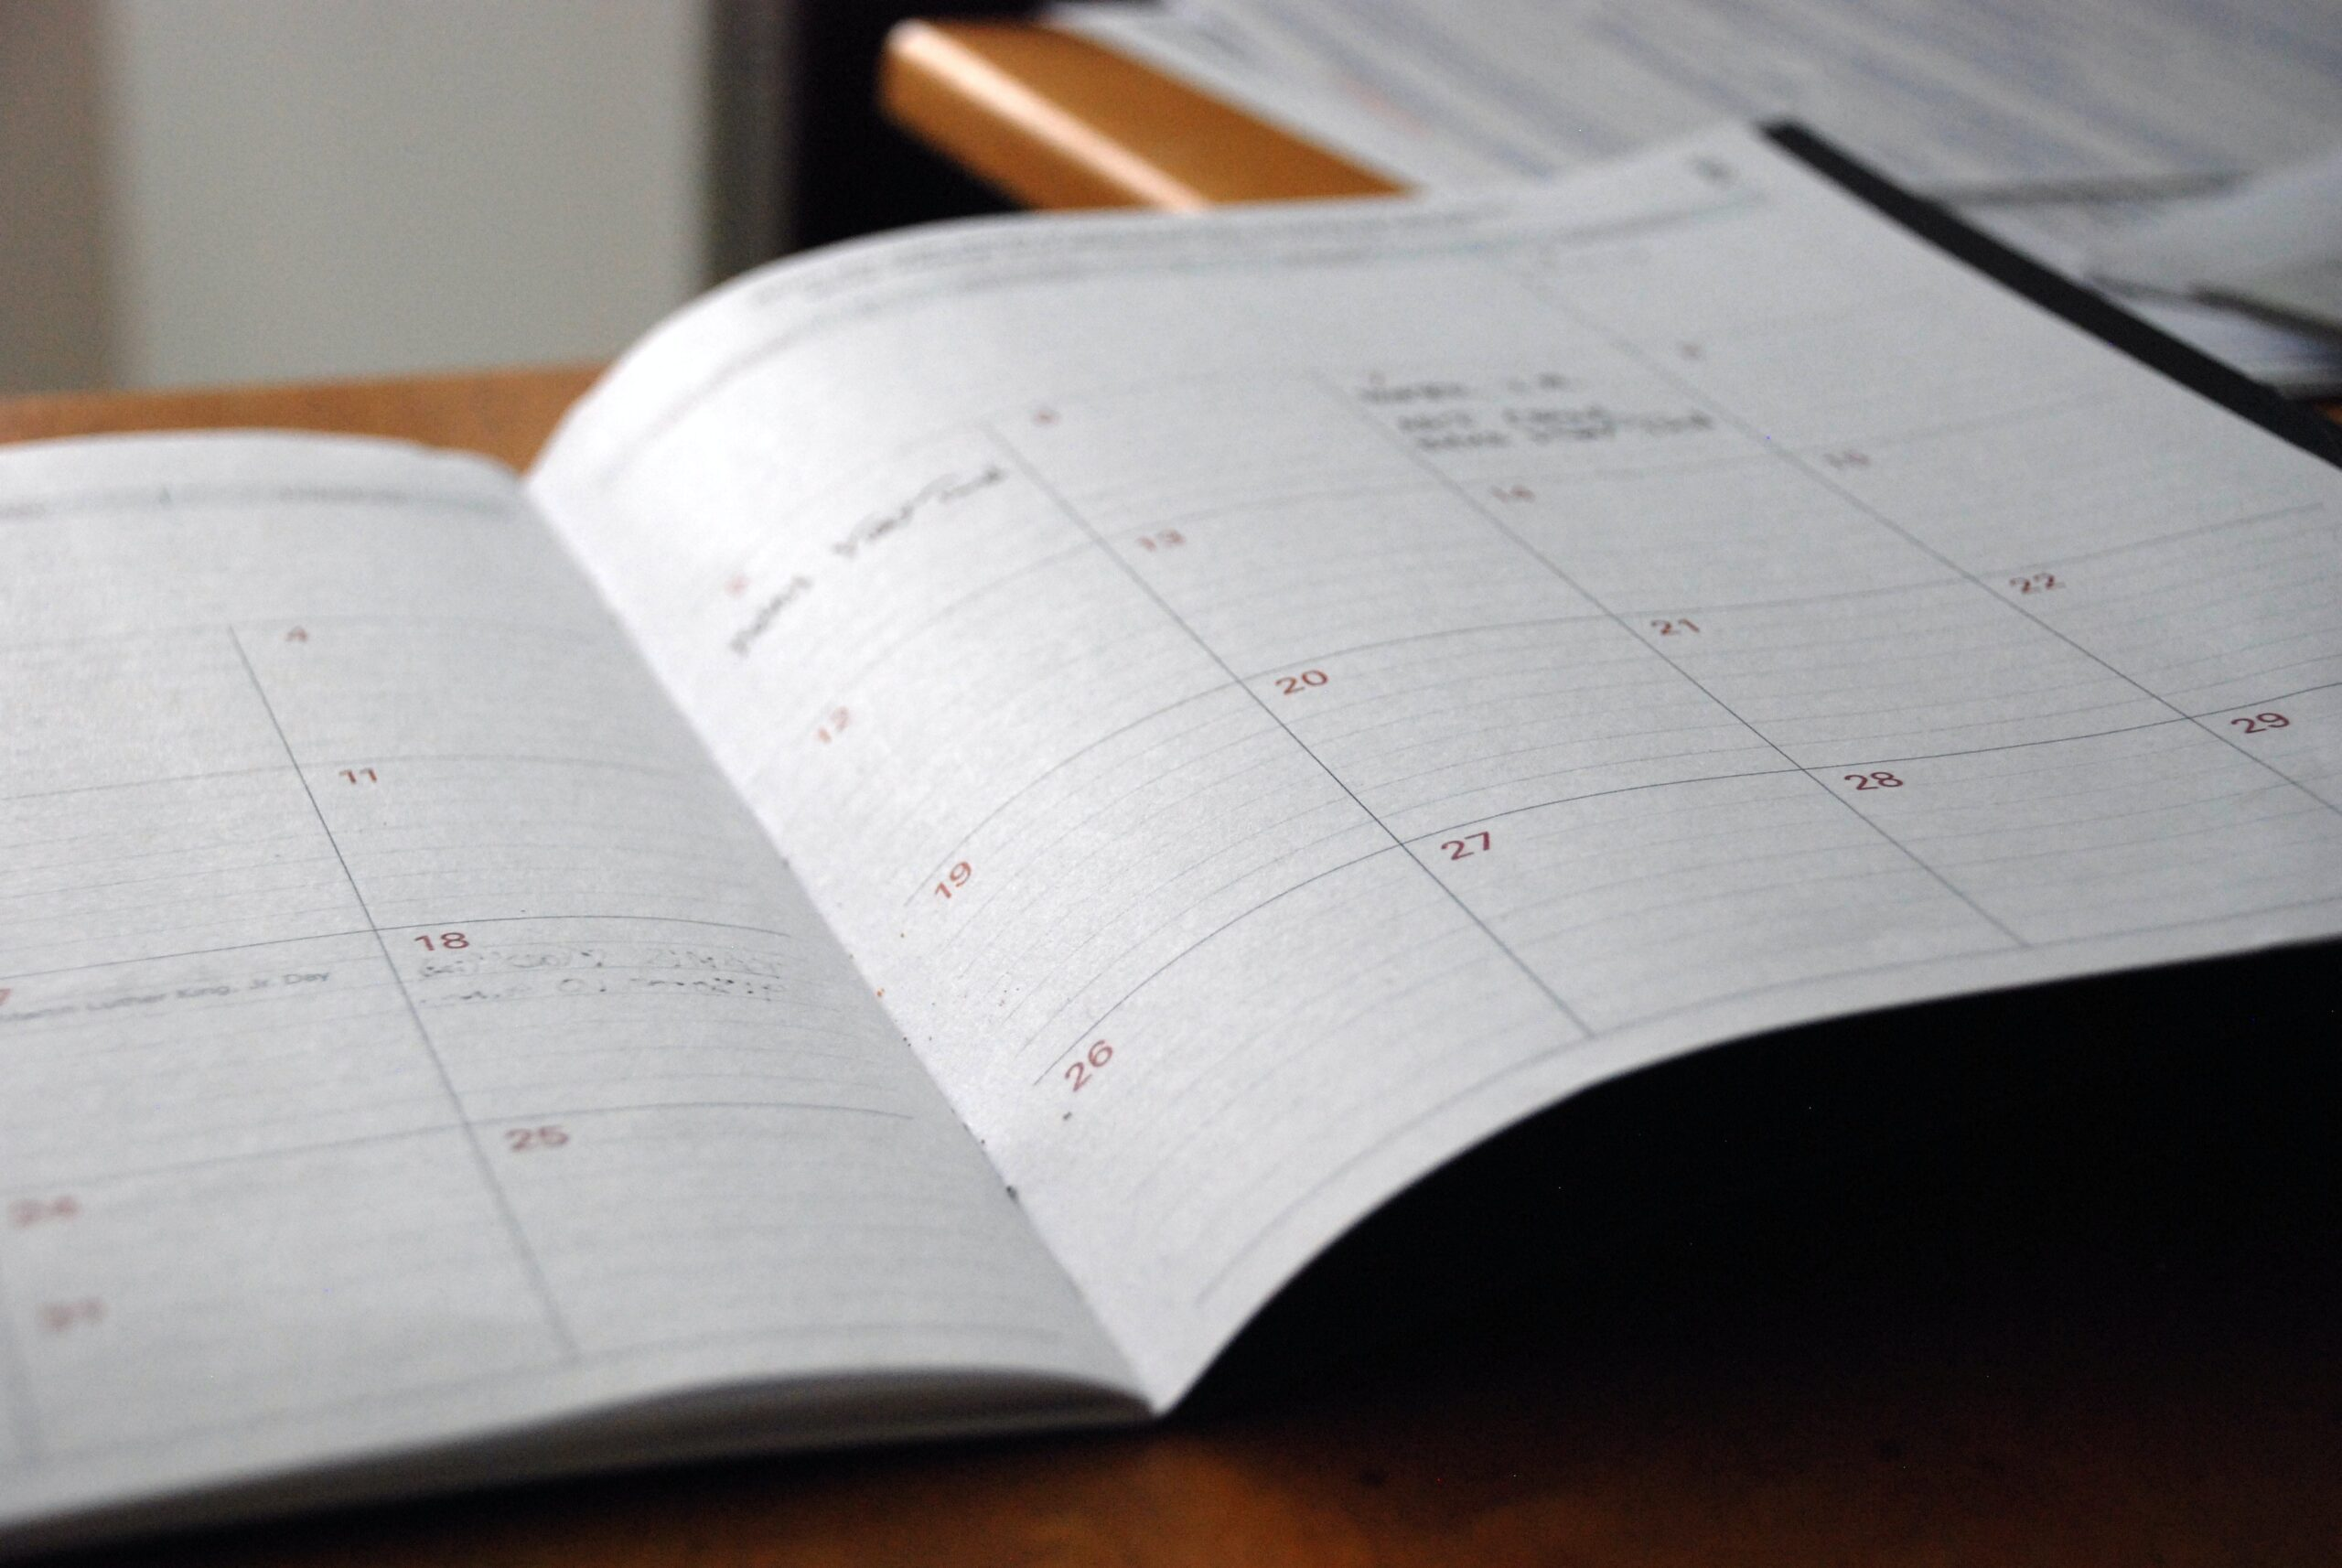 12 Months and Counting: How to Ensure Your Recruitment Start-Up Breaks the 1 Year Mark